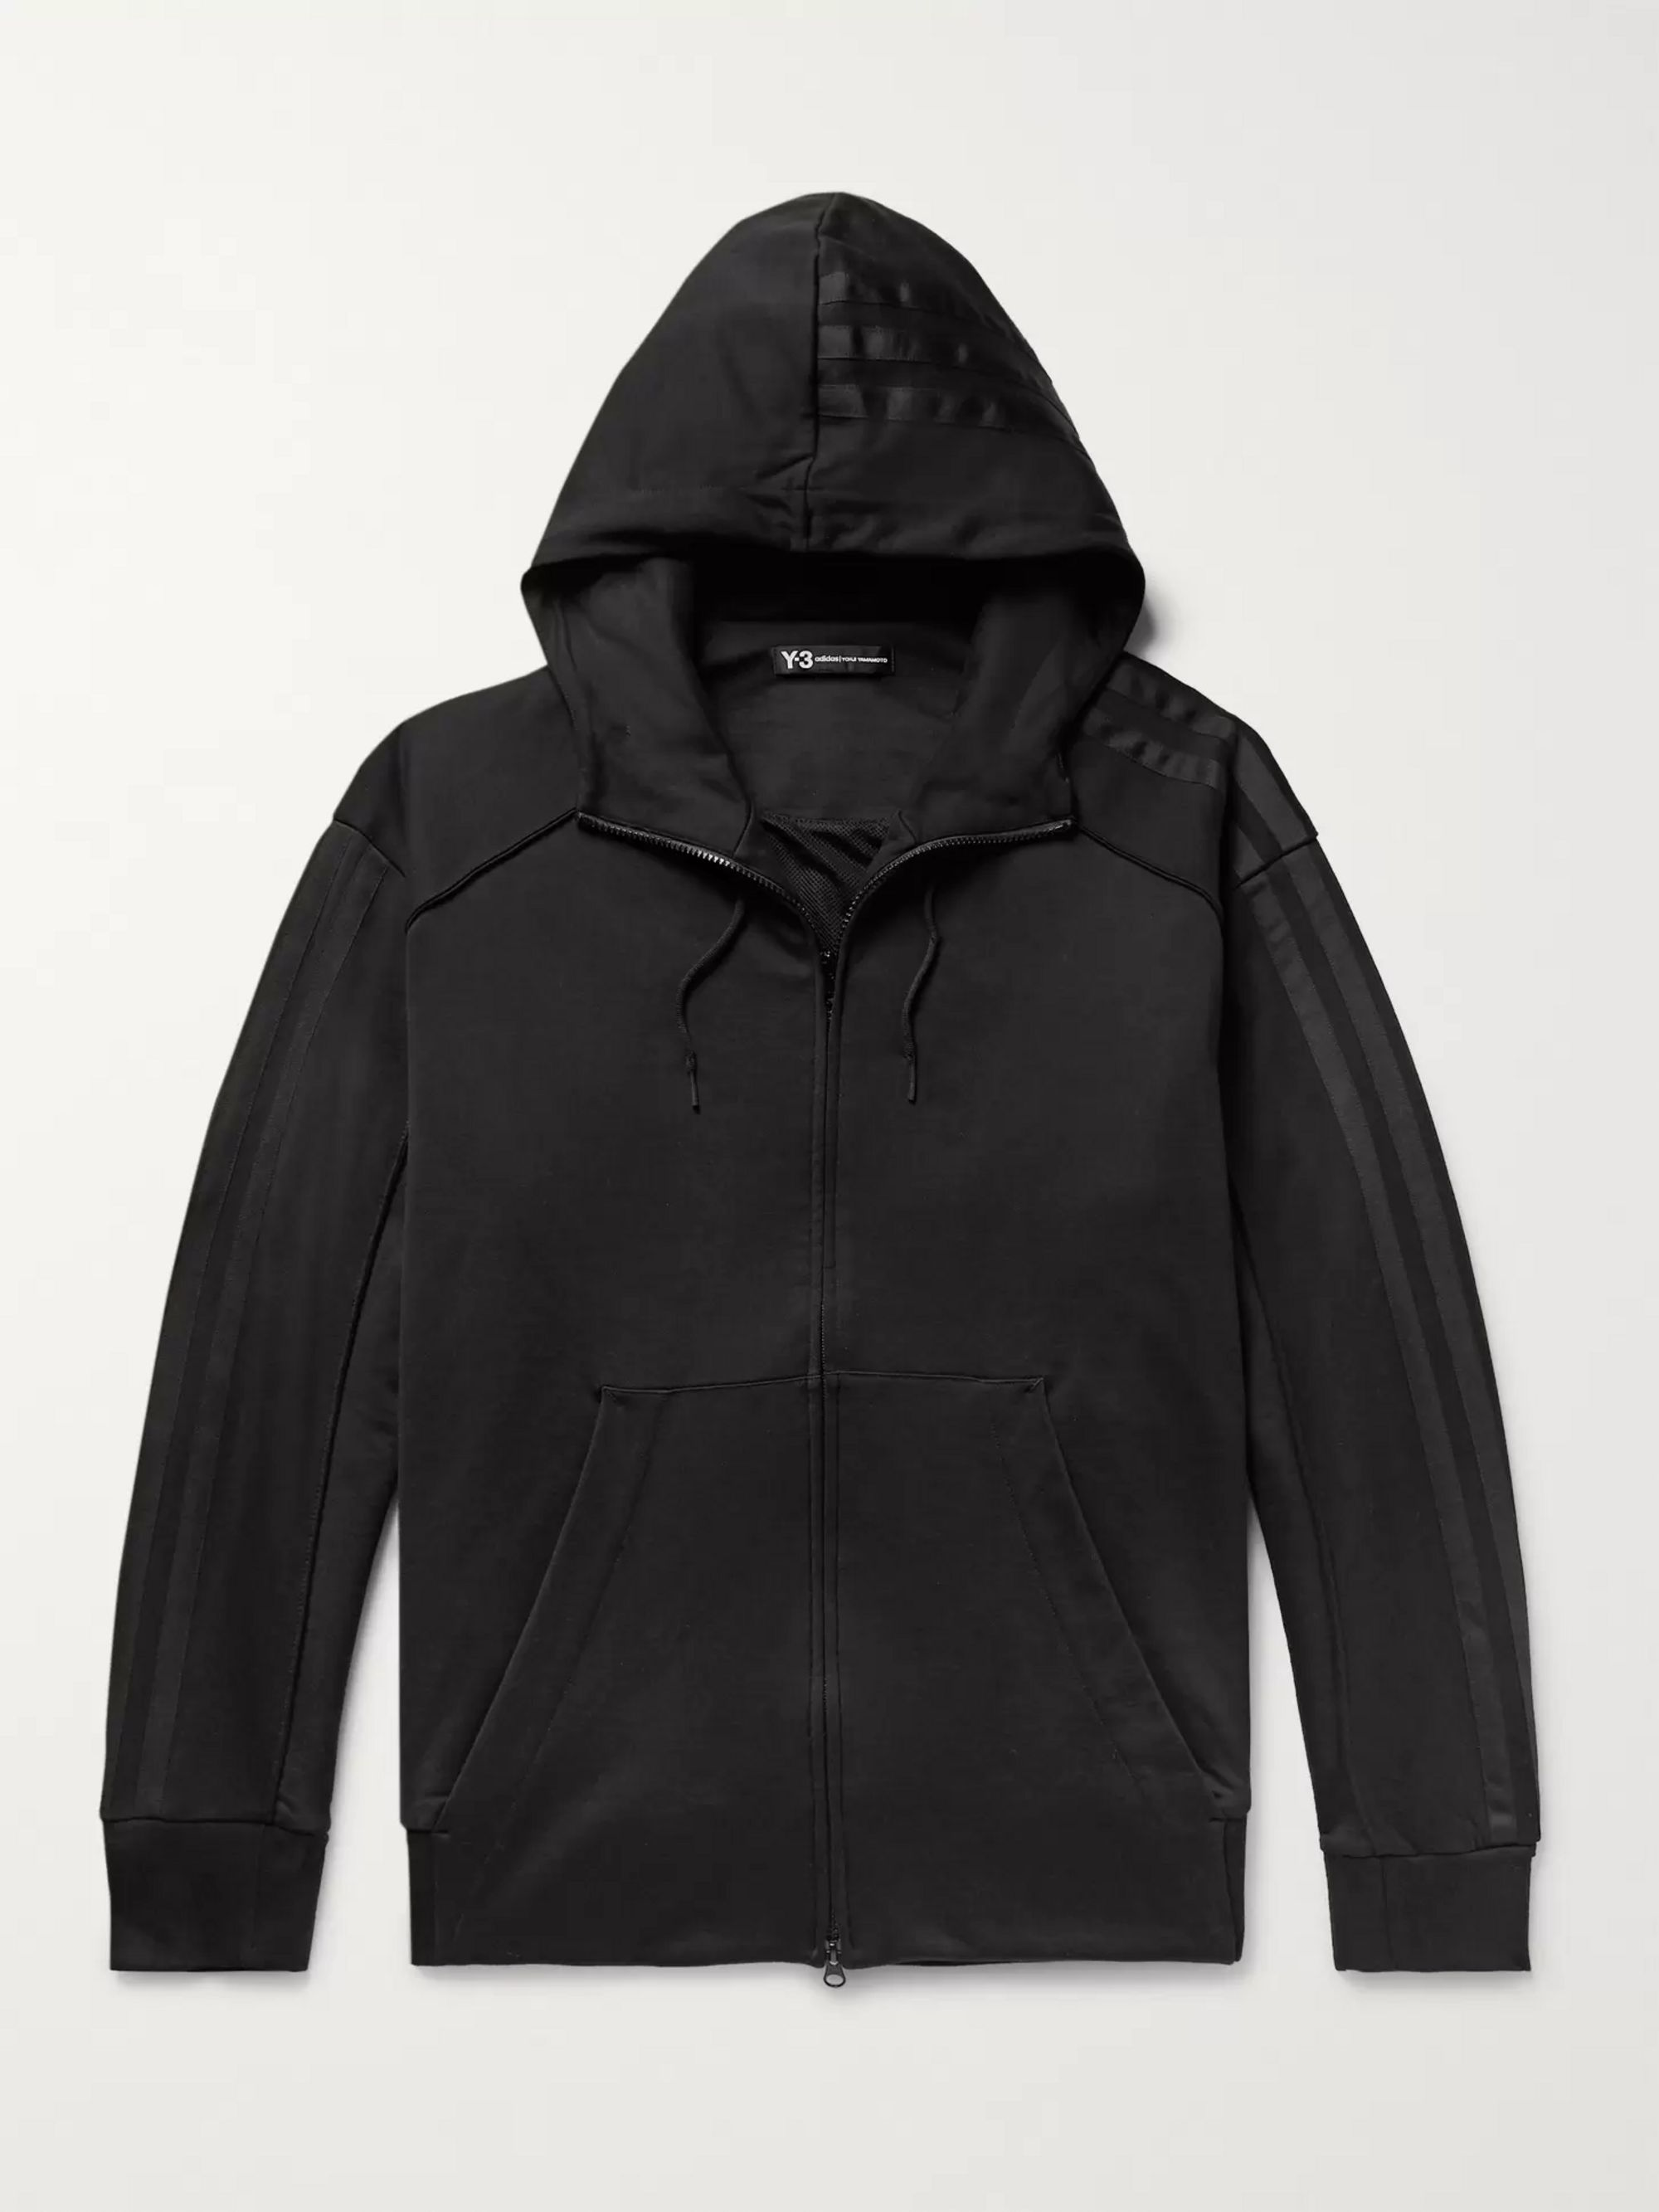 Y-3 Embroidered Printed Cotton-Jersey Zip-Up Hoodie